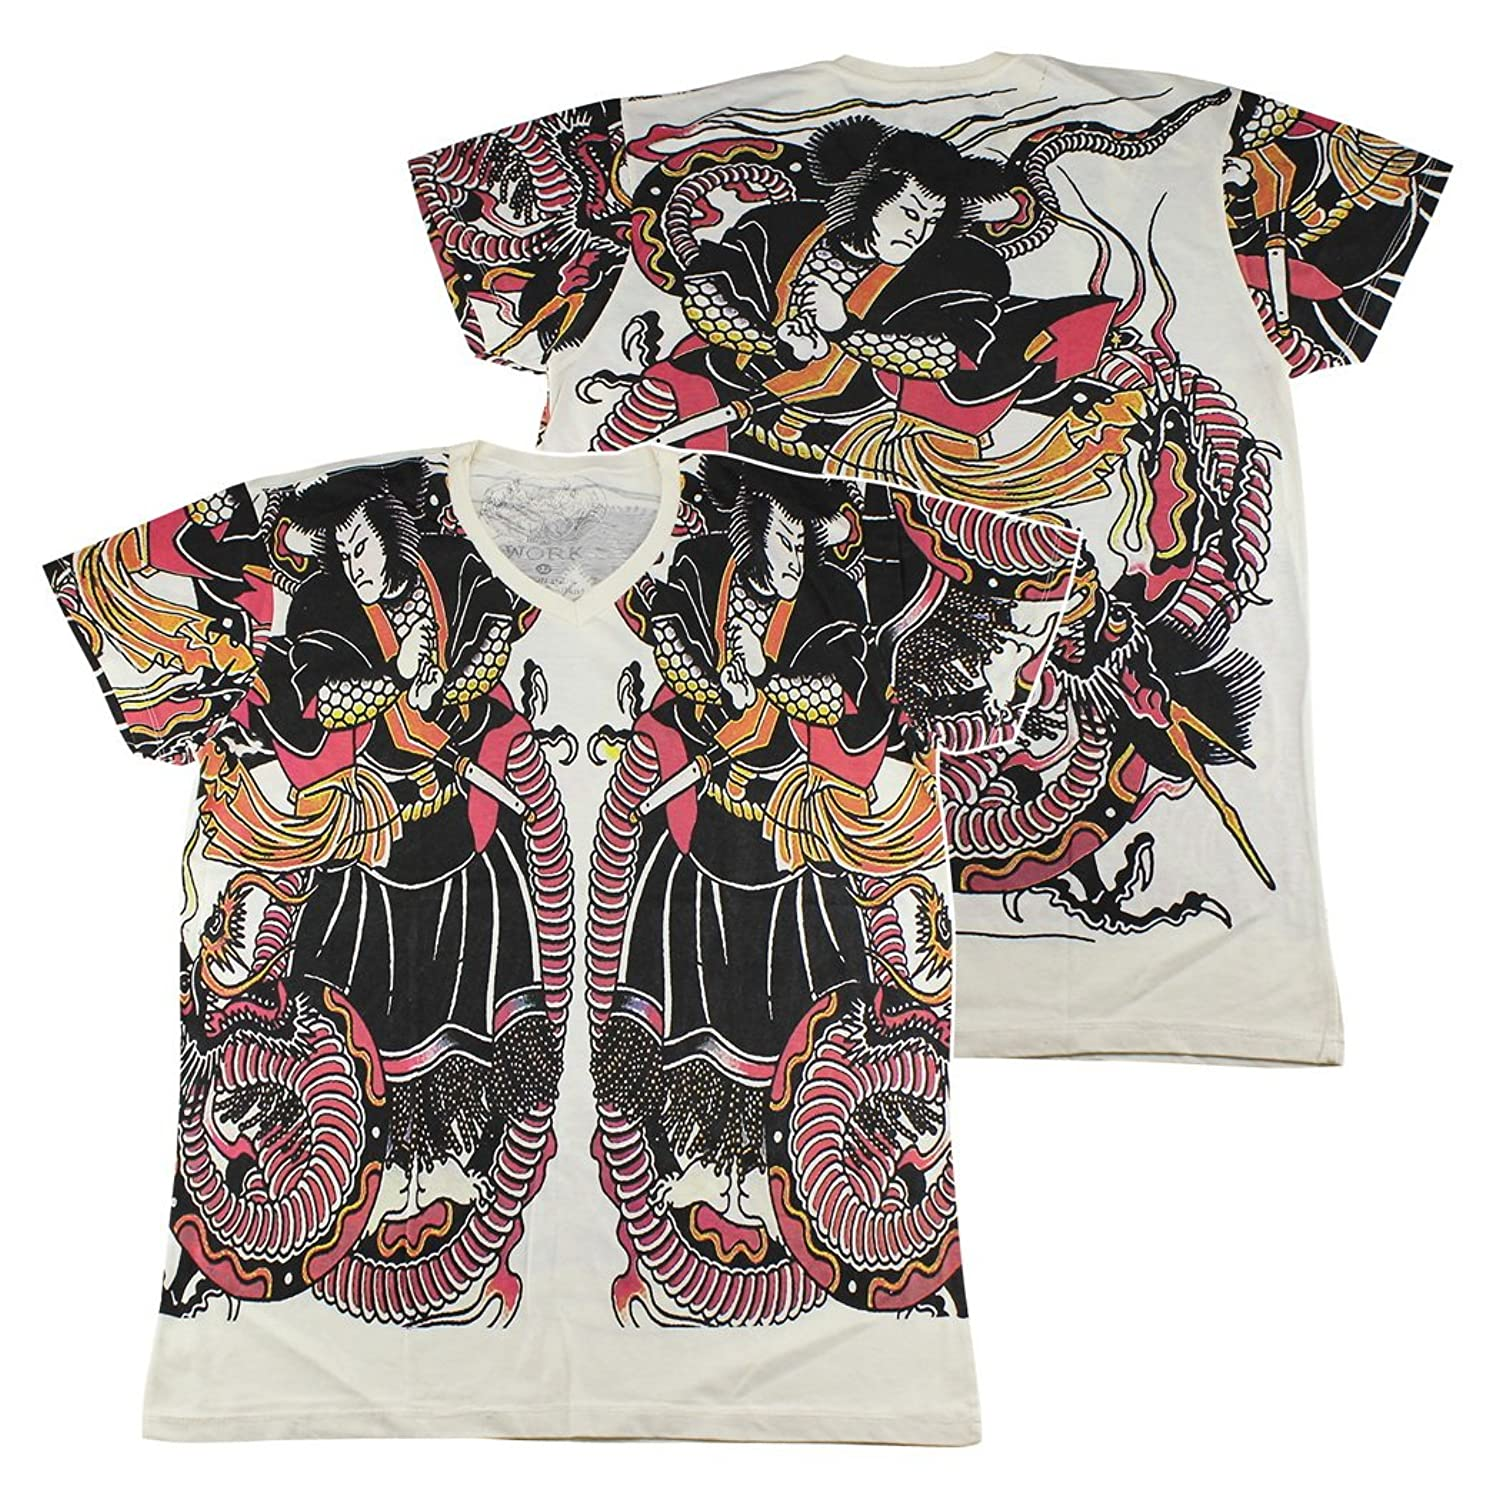 WORK Japanese Irezumi Tattoo T-Shirt White / WK114 size L